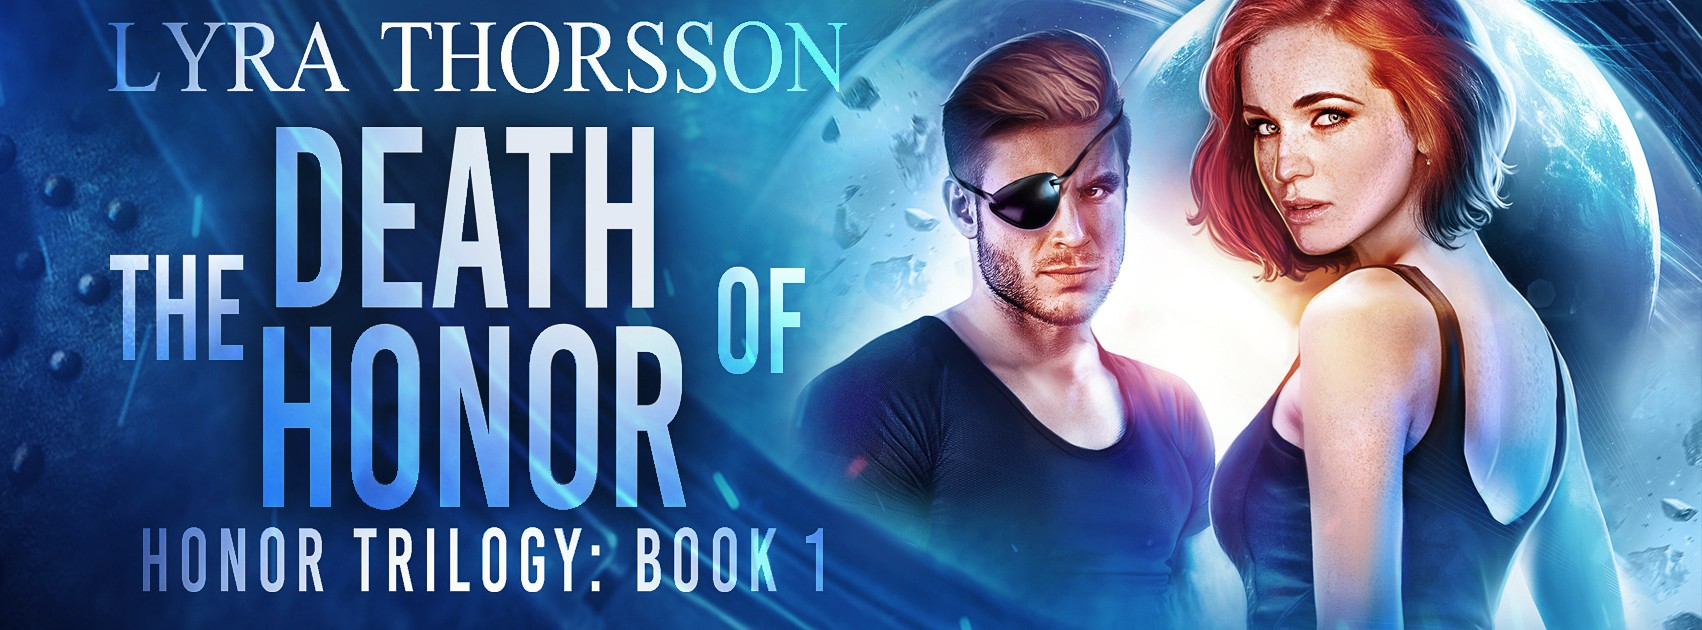 The Death of Honor book 1